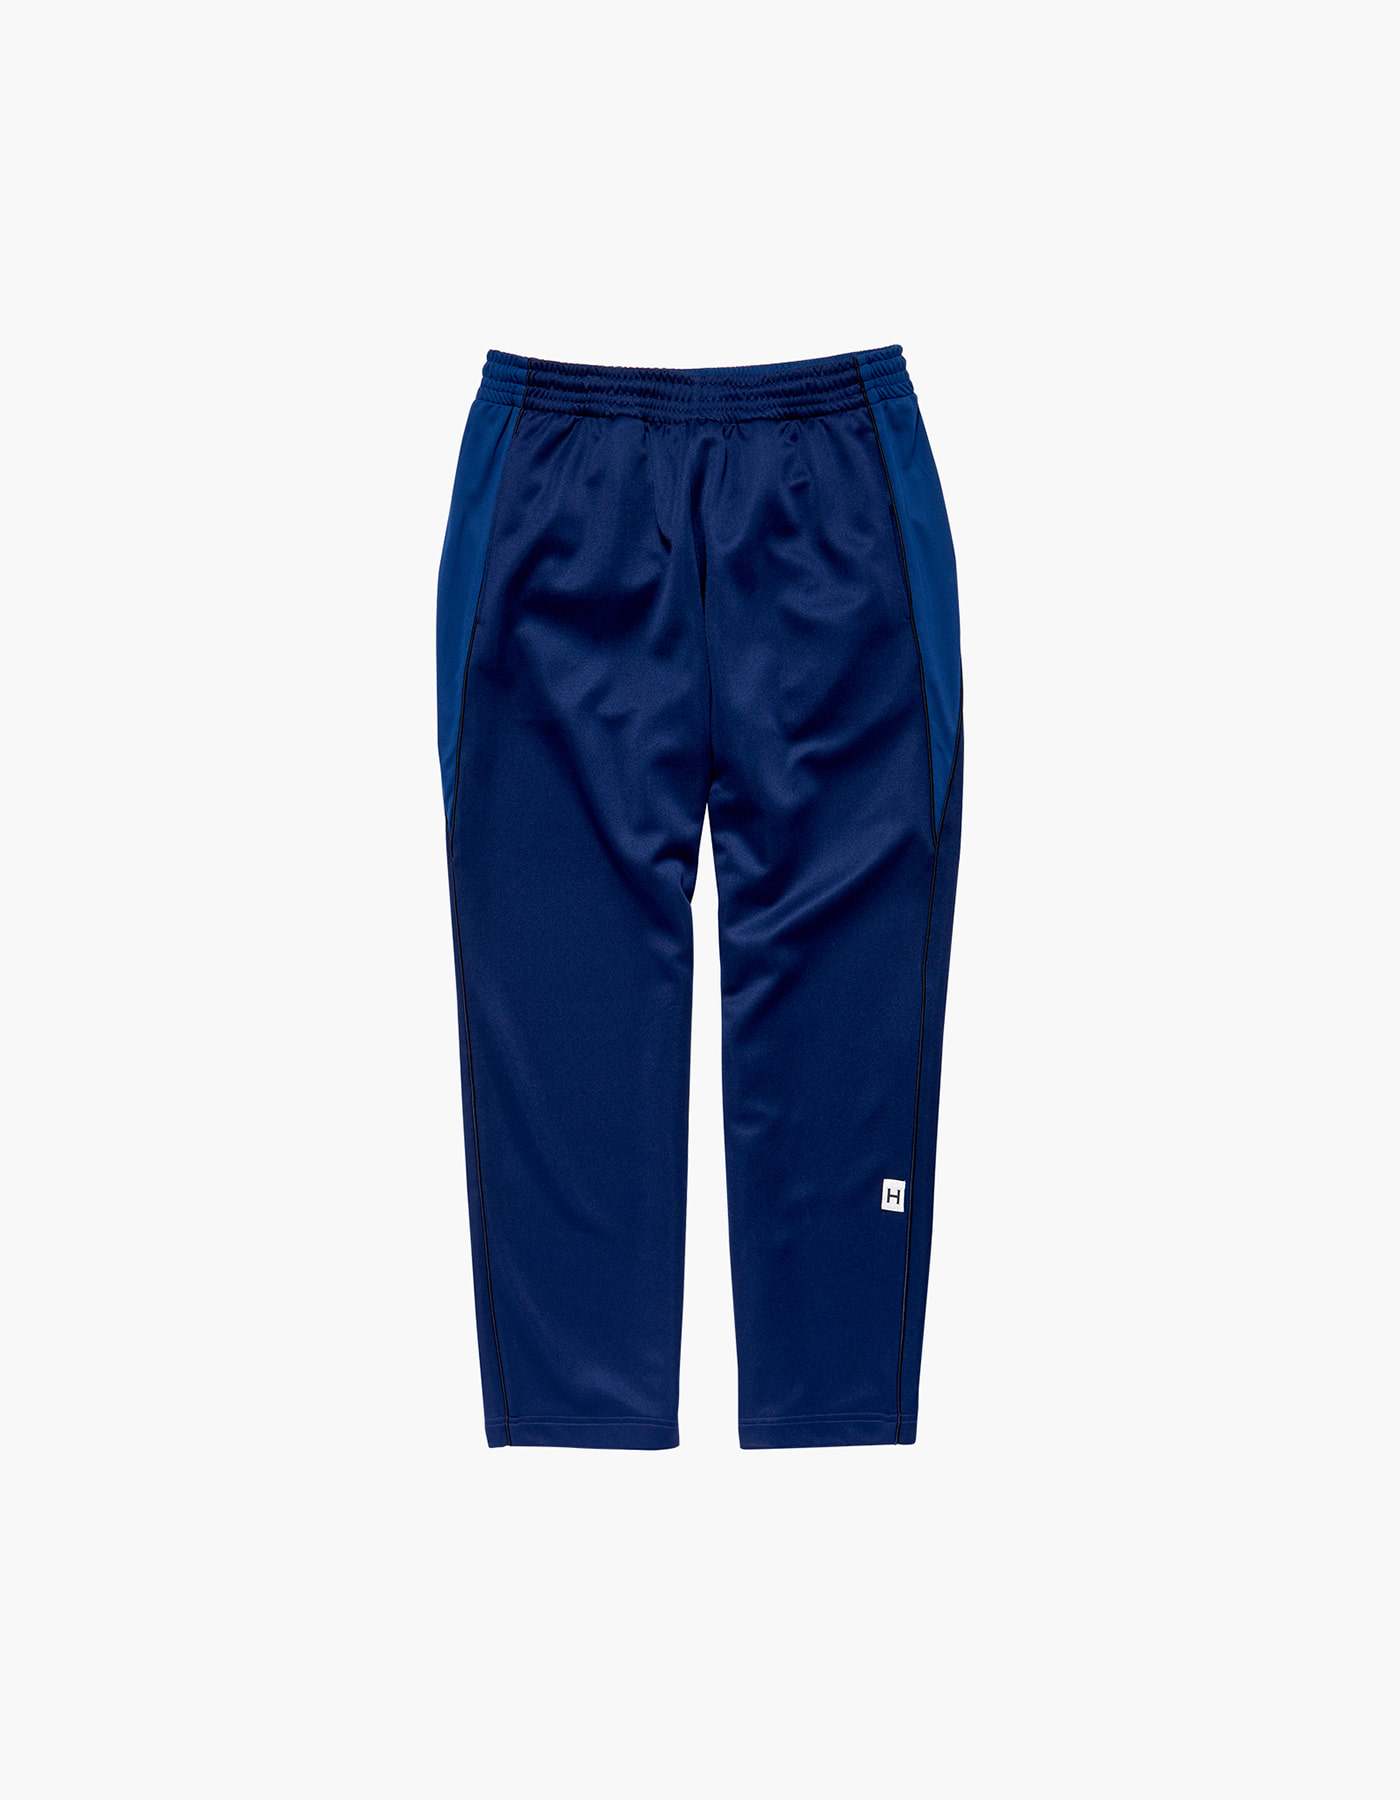 HFC CRICKET PANTS / NAVY